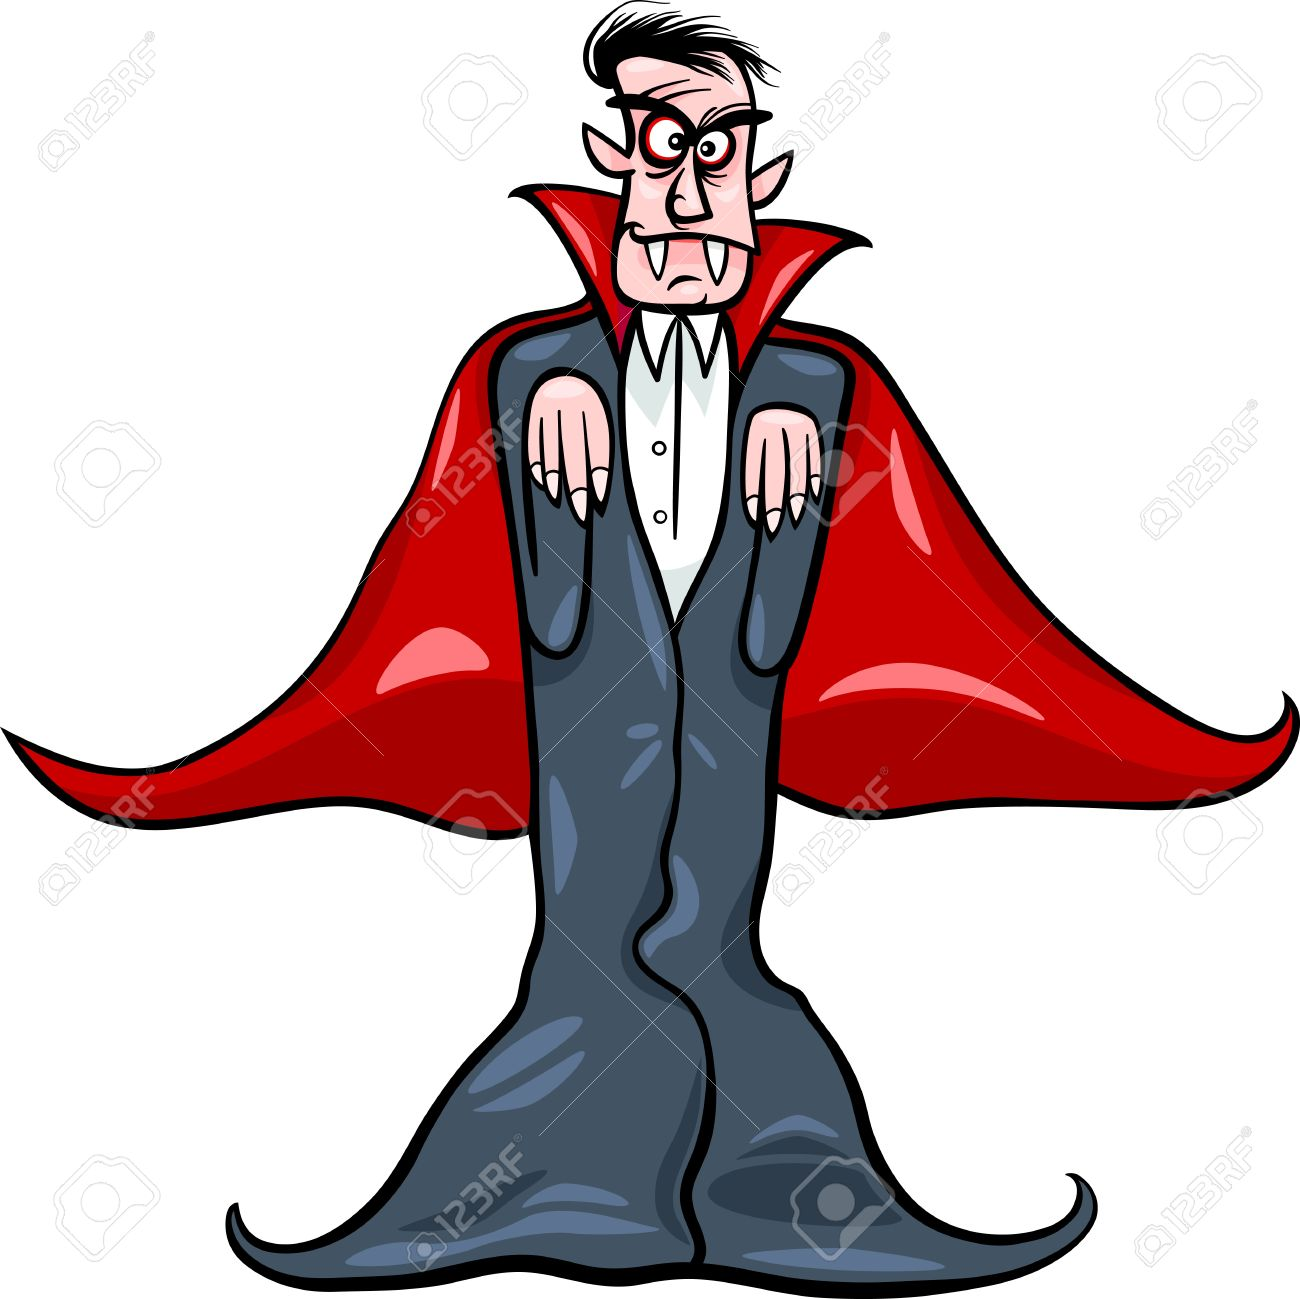 1300x1299 Cartoon Illustration Of Scary Count Dracula Vampire Royalty Free